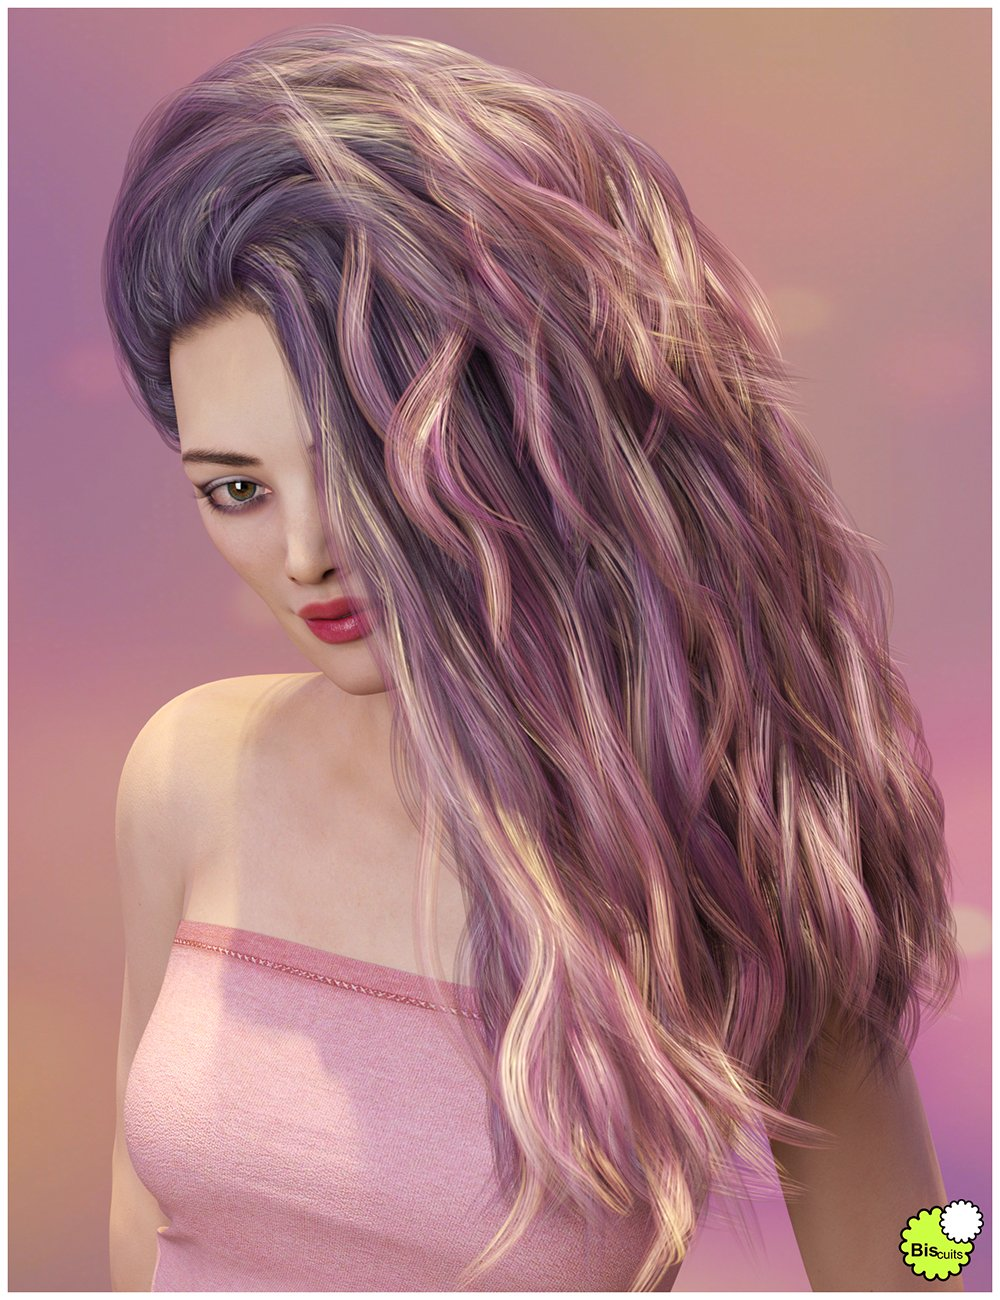 Texture Expansion for Biscuits Jam Hair by: Biscuits, 3D Models by Daz 3D